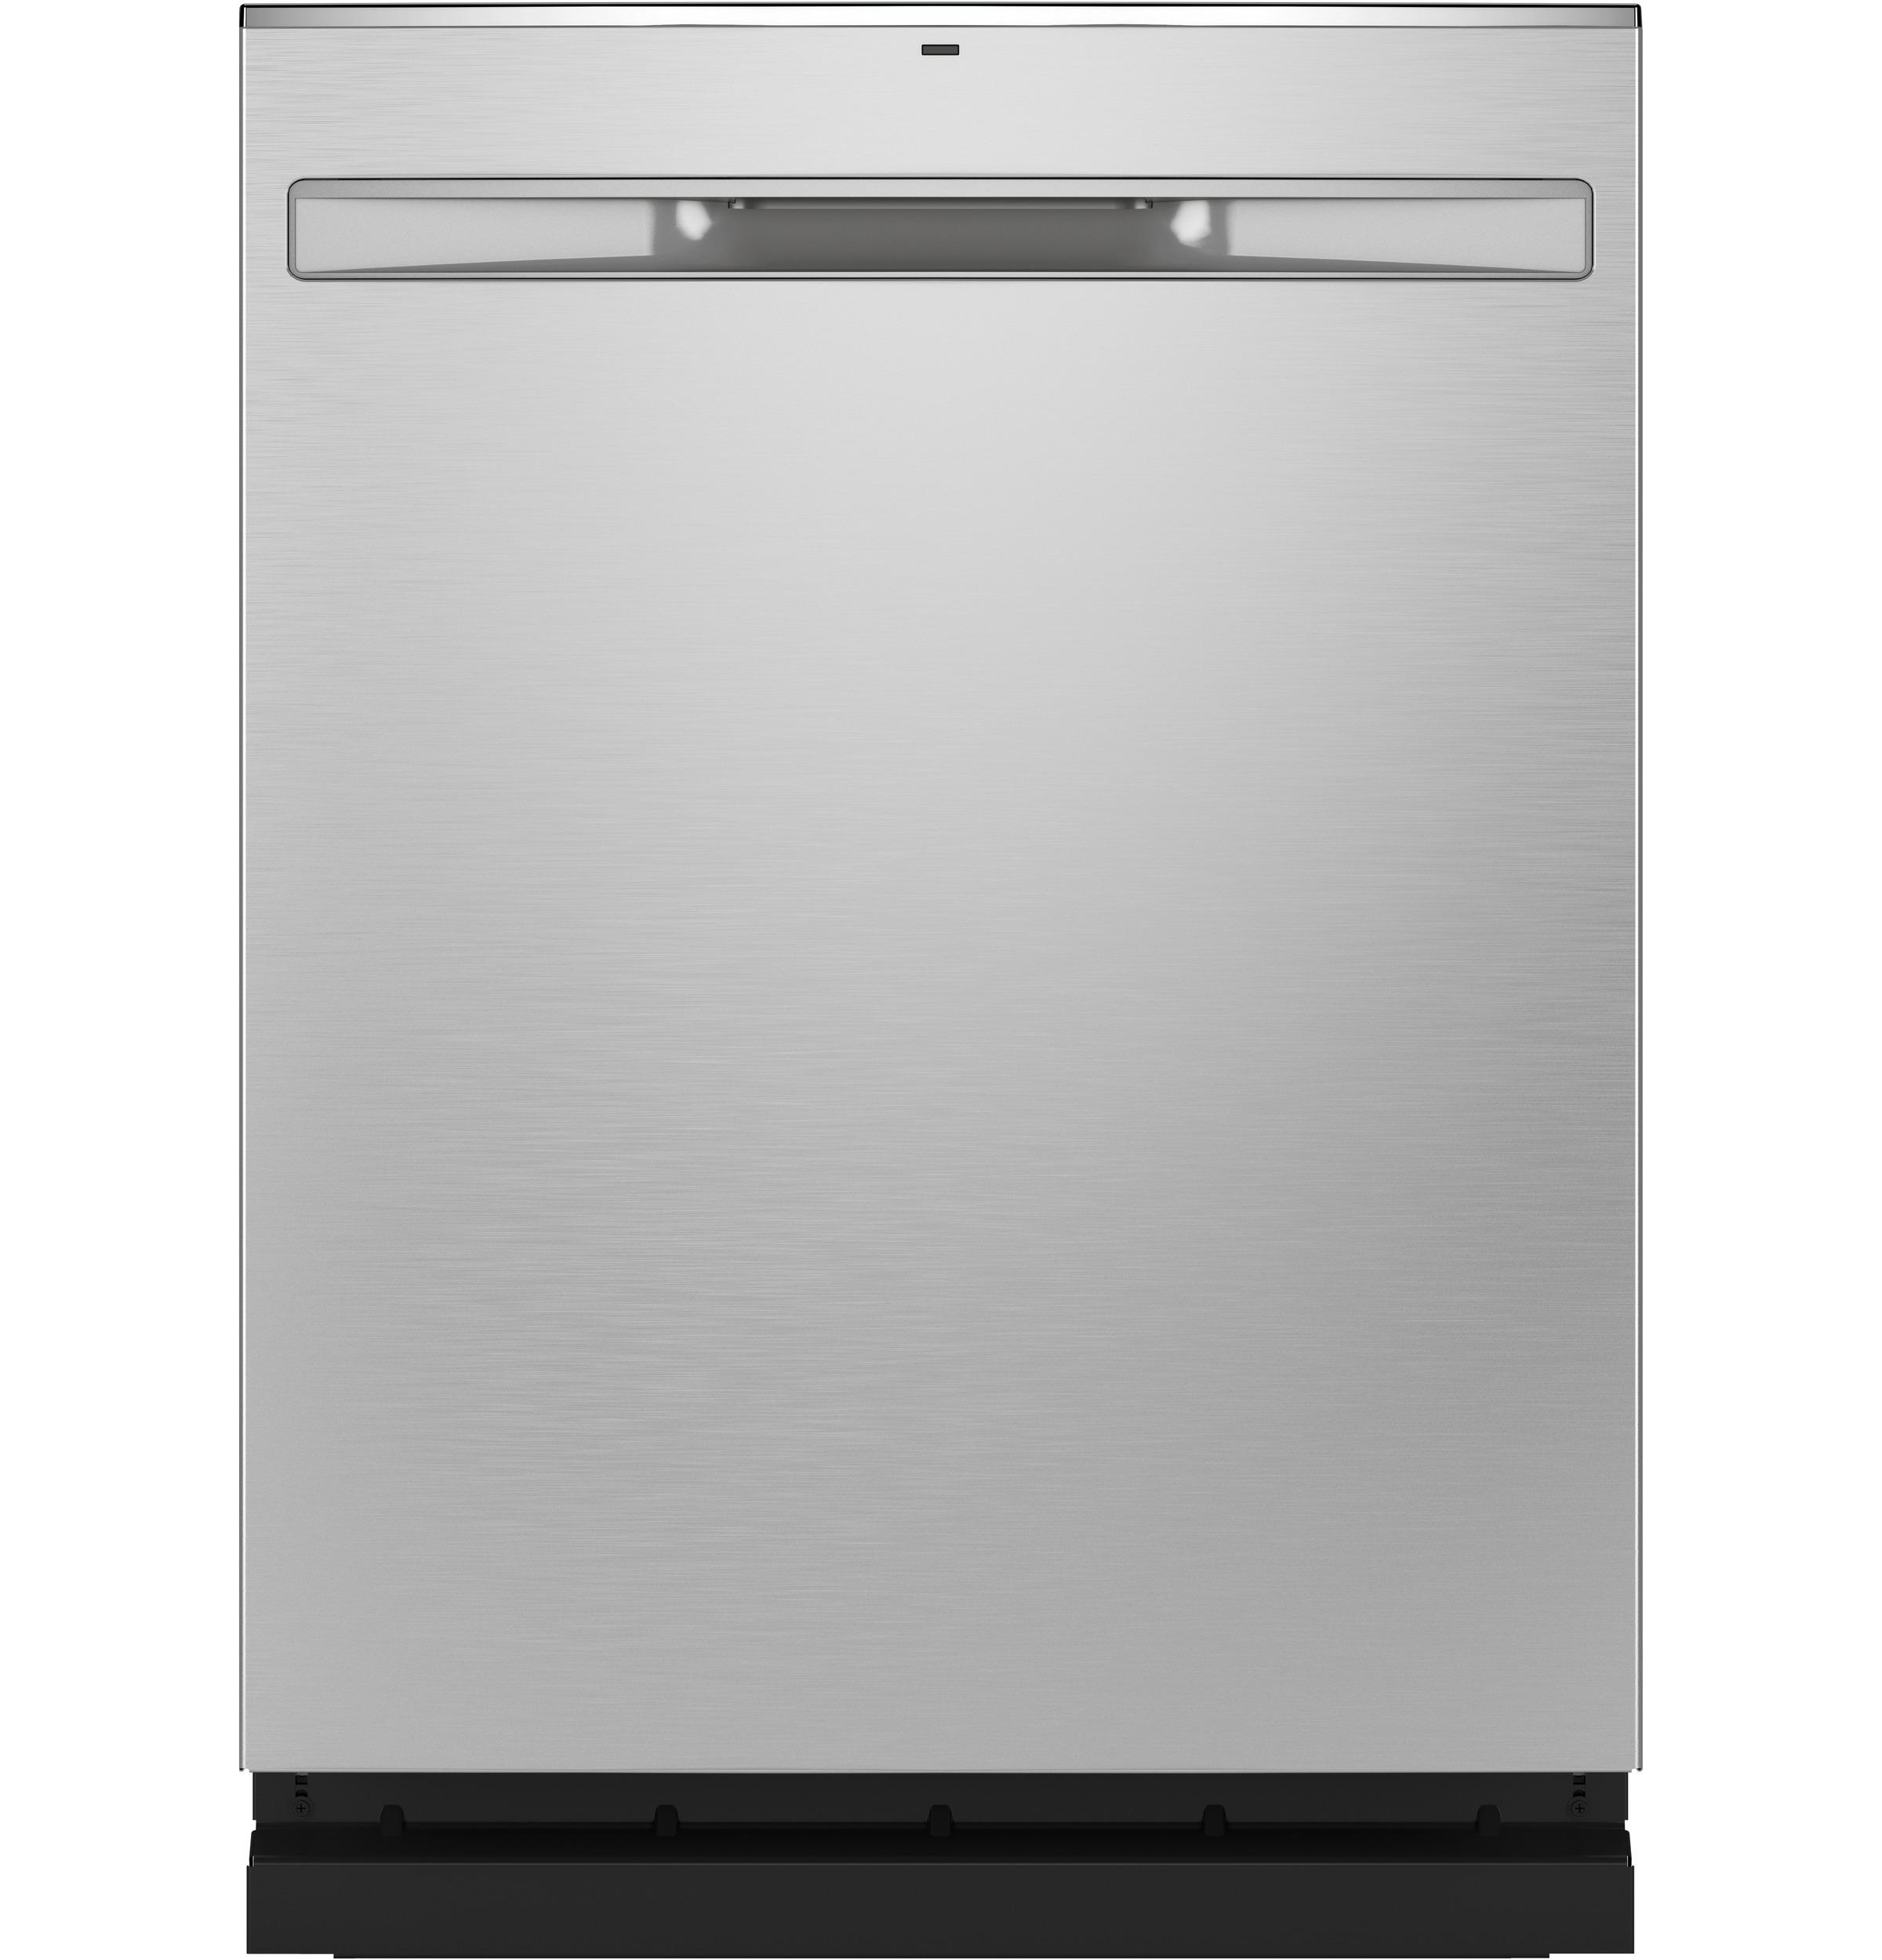 GE GE® Top Control with Stainless Steel Interior Dishwasher with Sanitize Cycle & Dry Boost